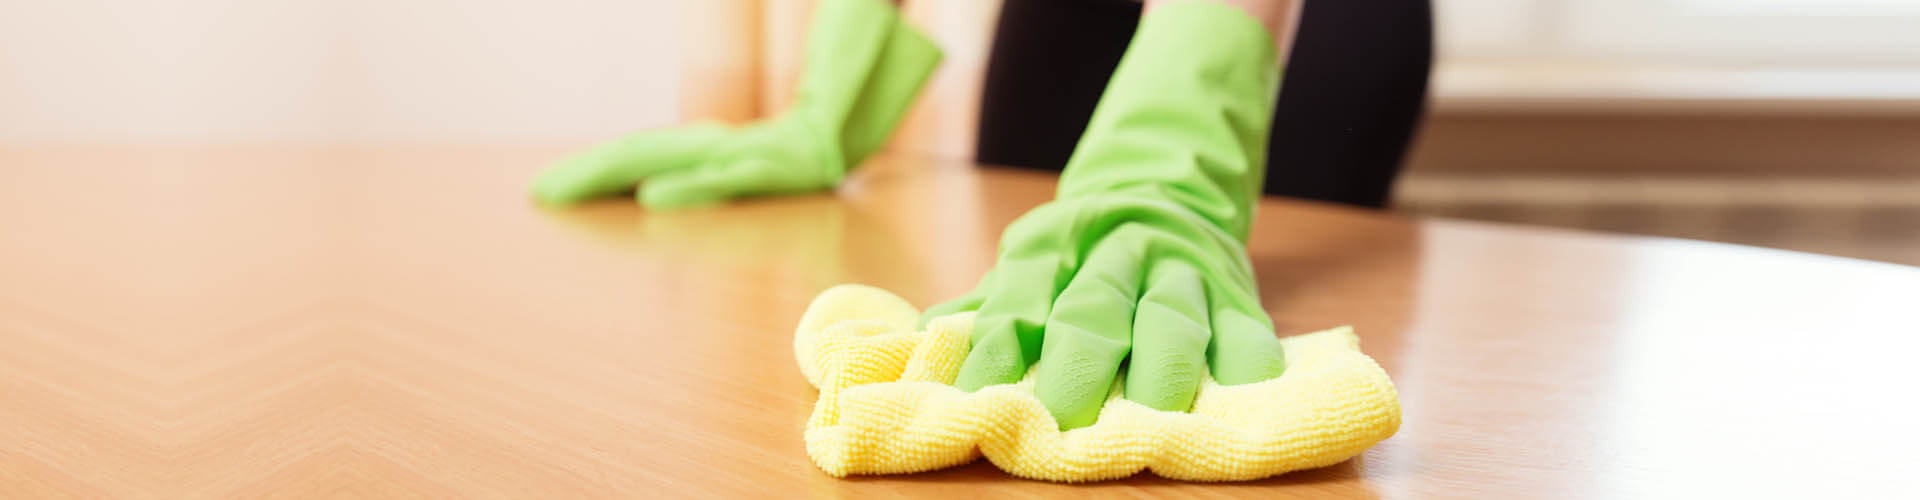 Hygiene Services Kempston Cleaning Services